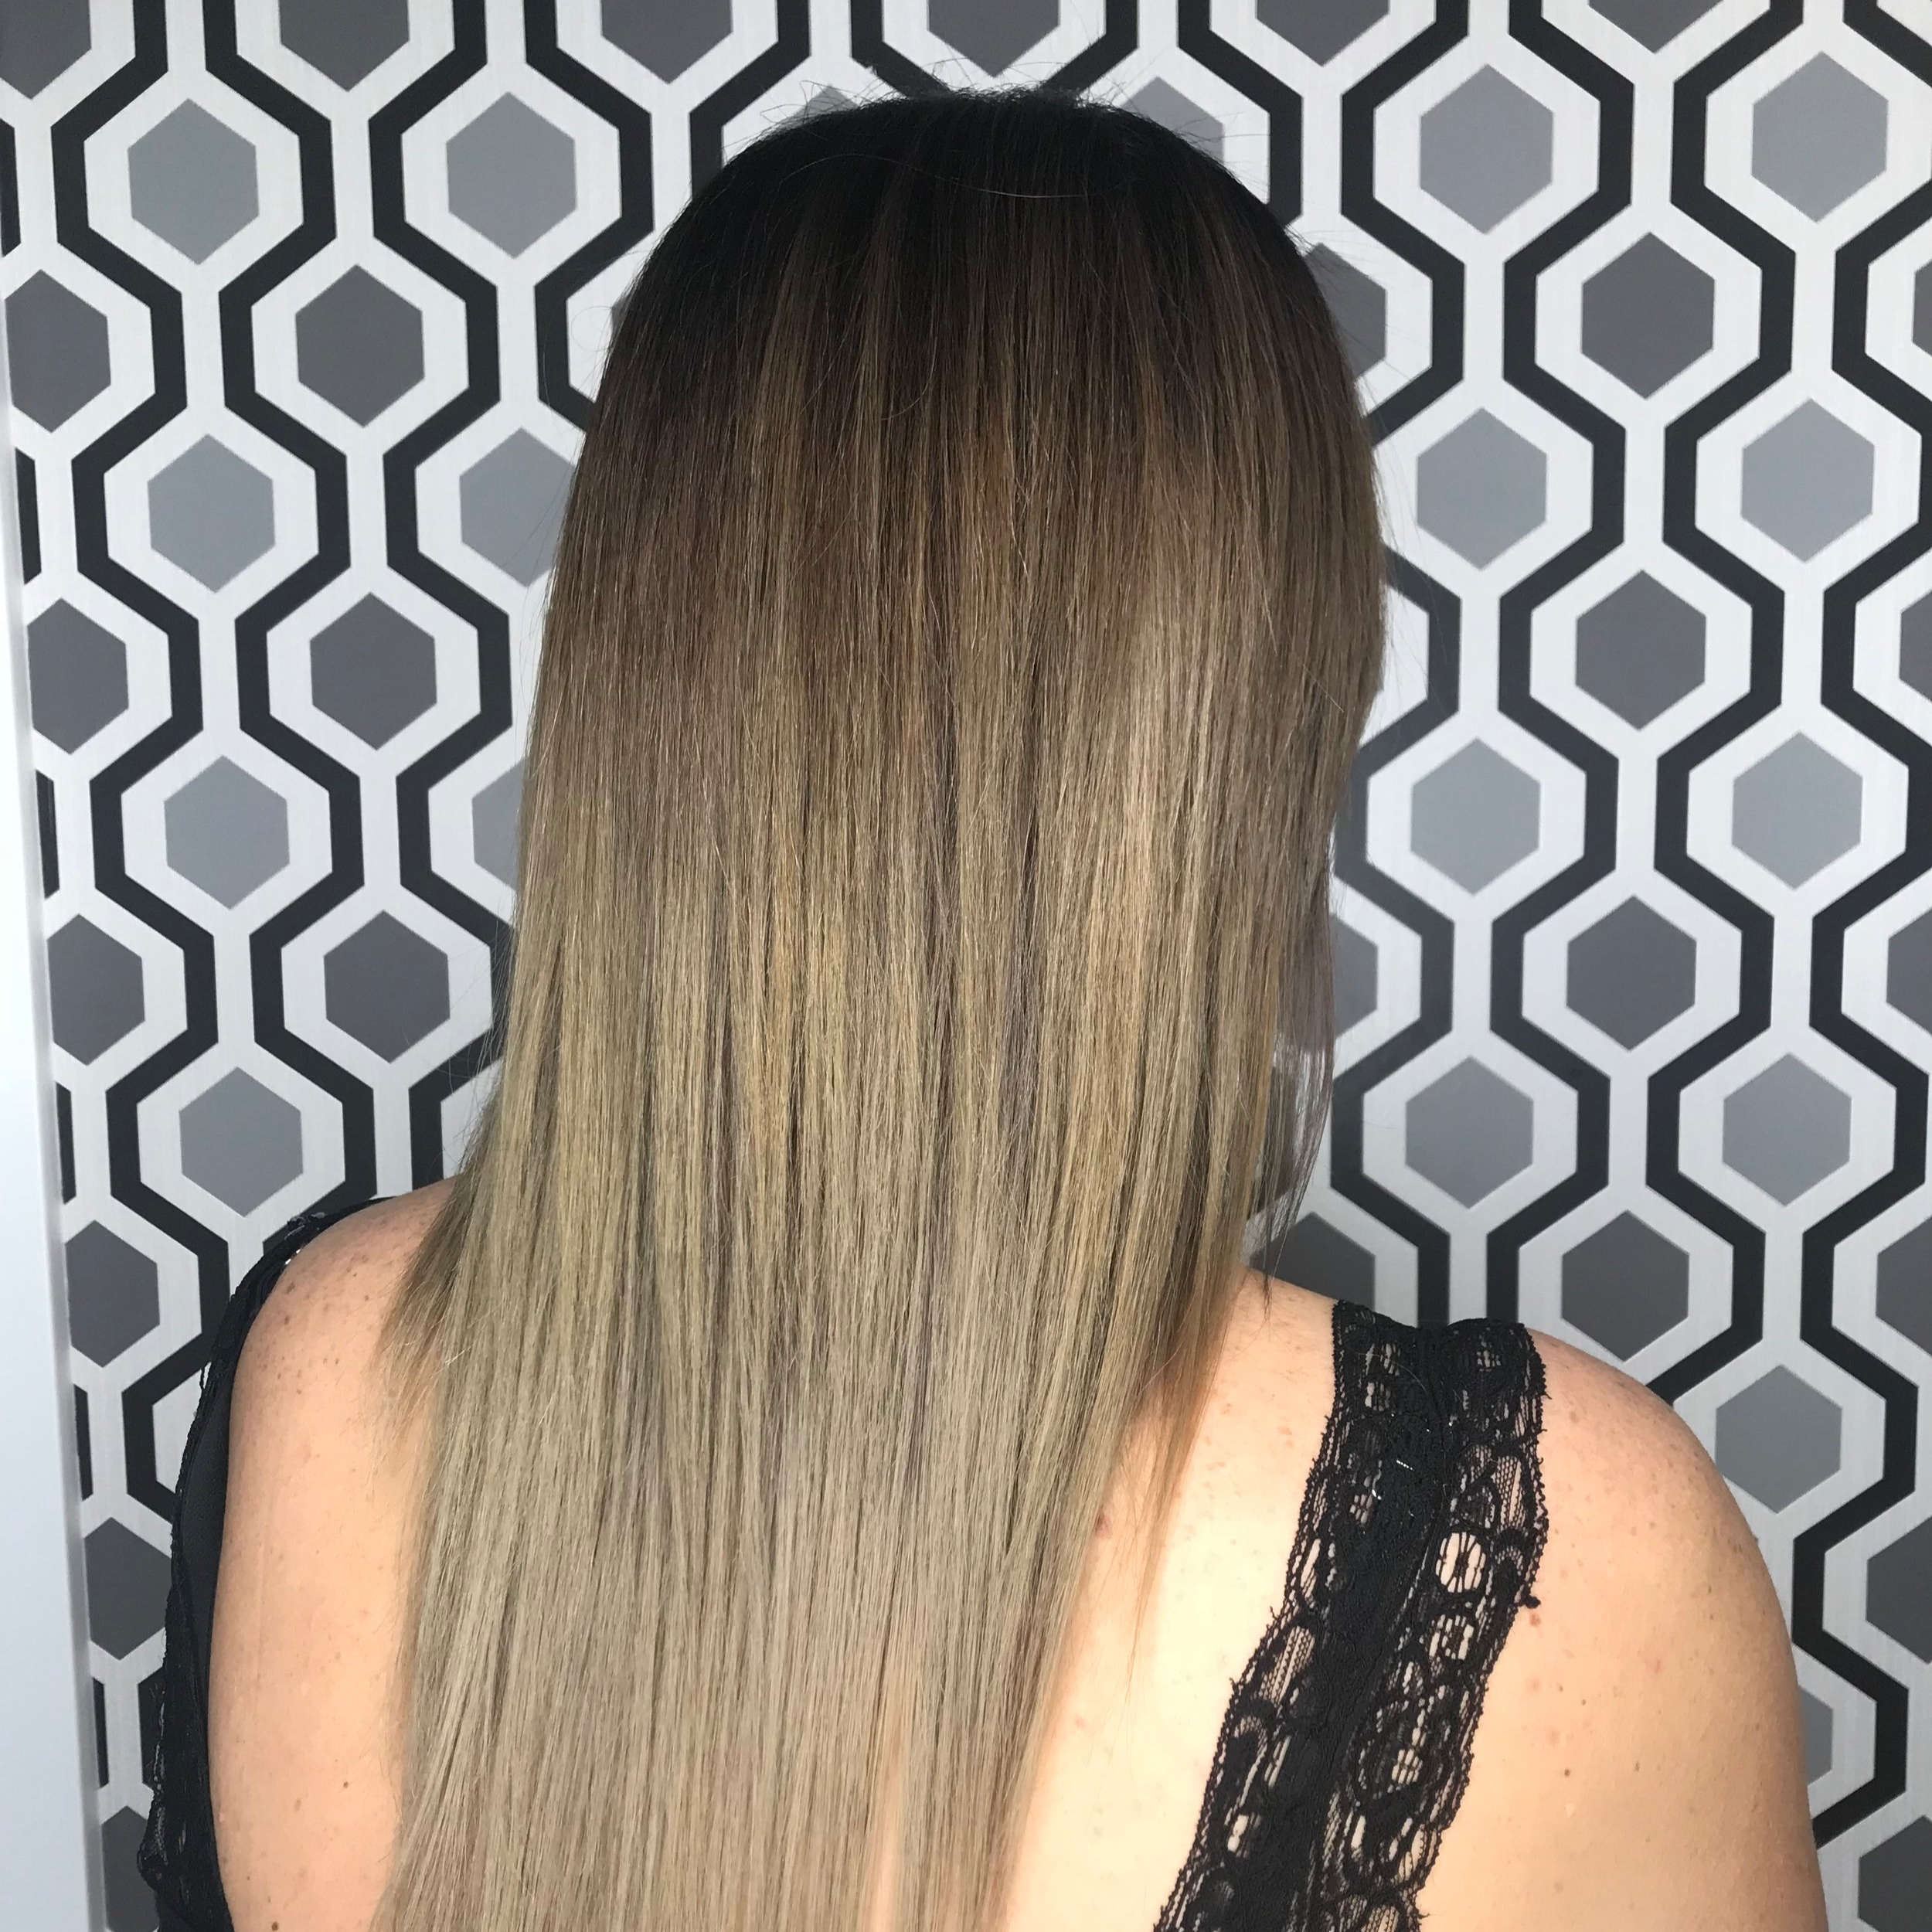 Creative Colour - Get the hair you dream of. With natural highlights and lowlights, creative colour elevates traditional colouring. Ombré and balayage — no problem.Starting at $130